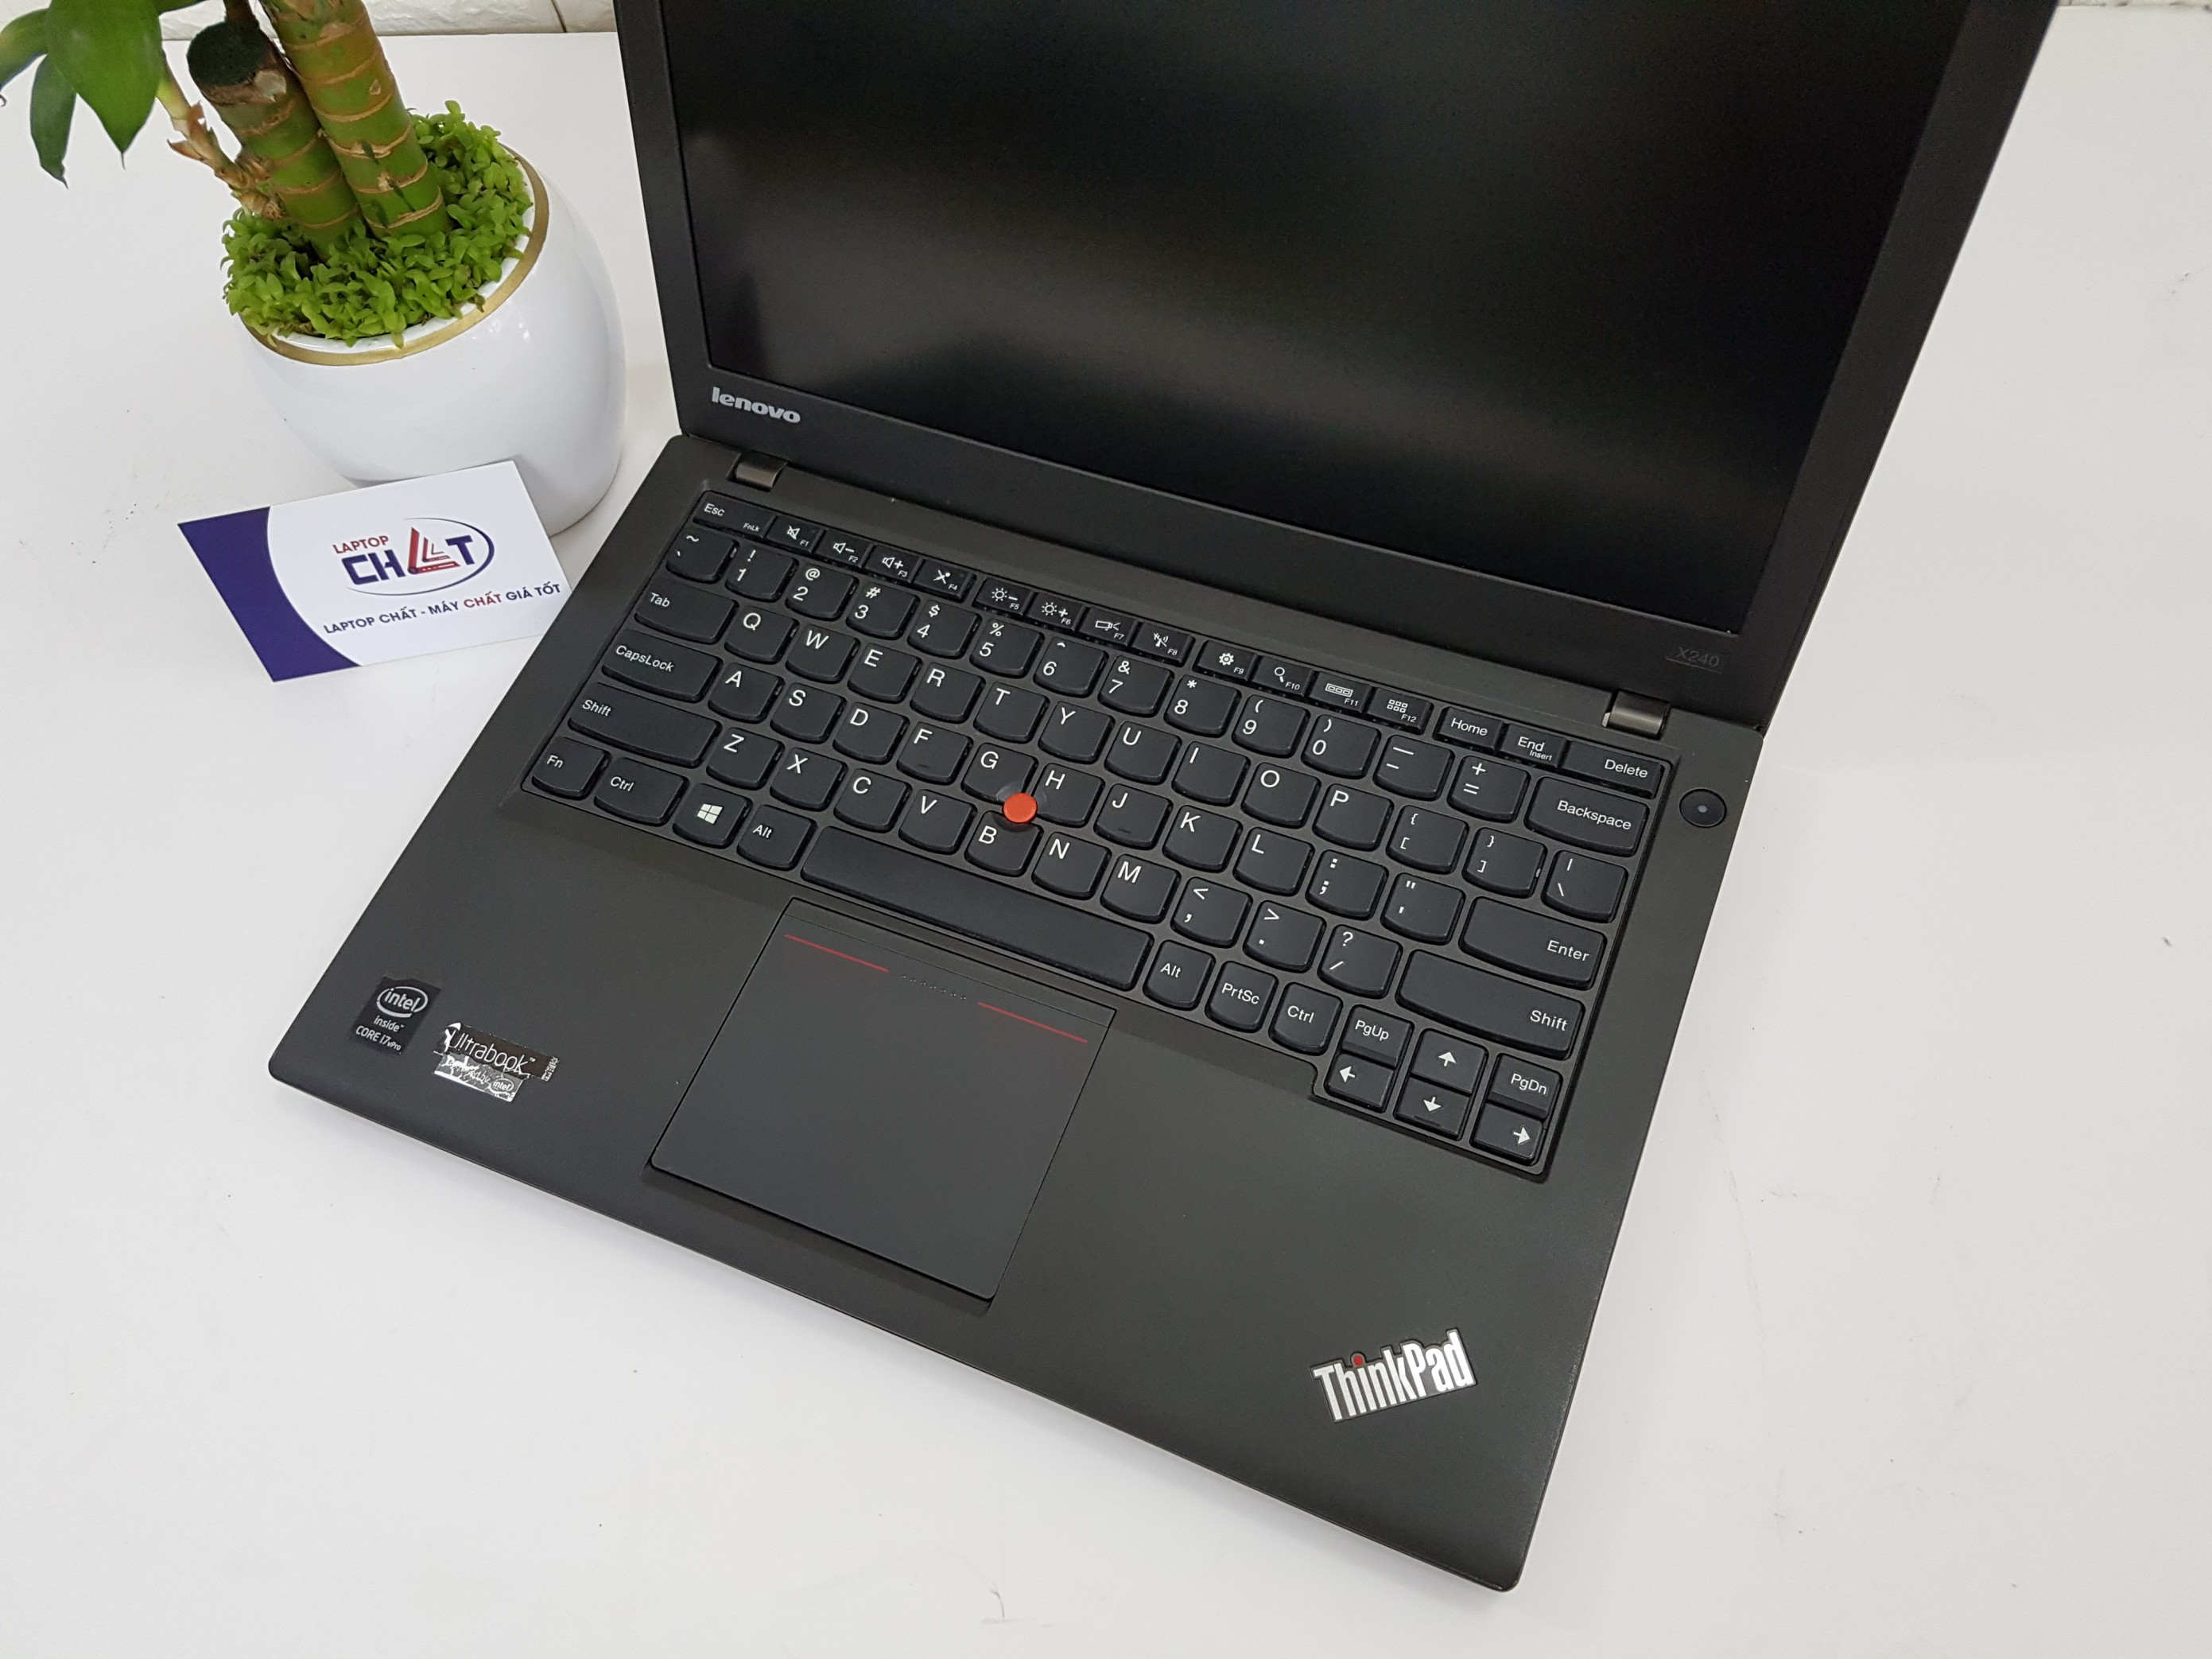 Thinkpad X240 core i7-1